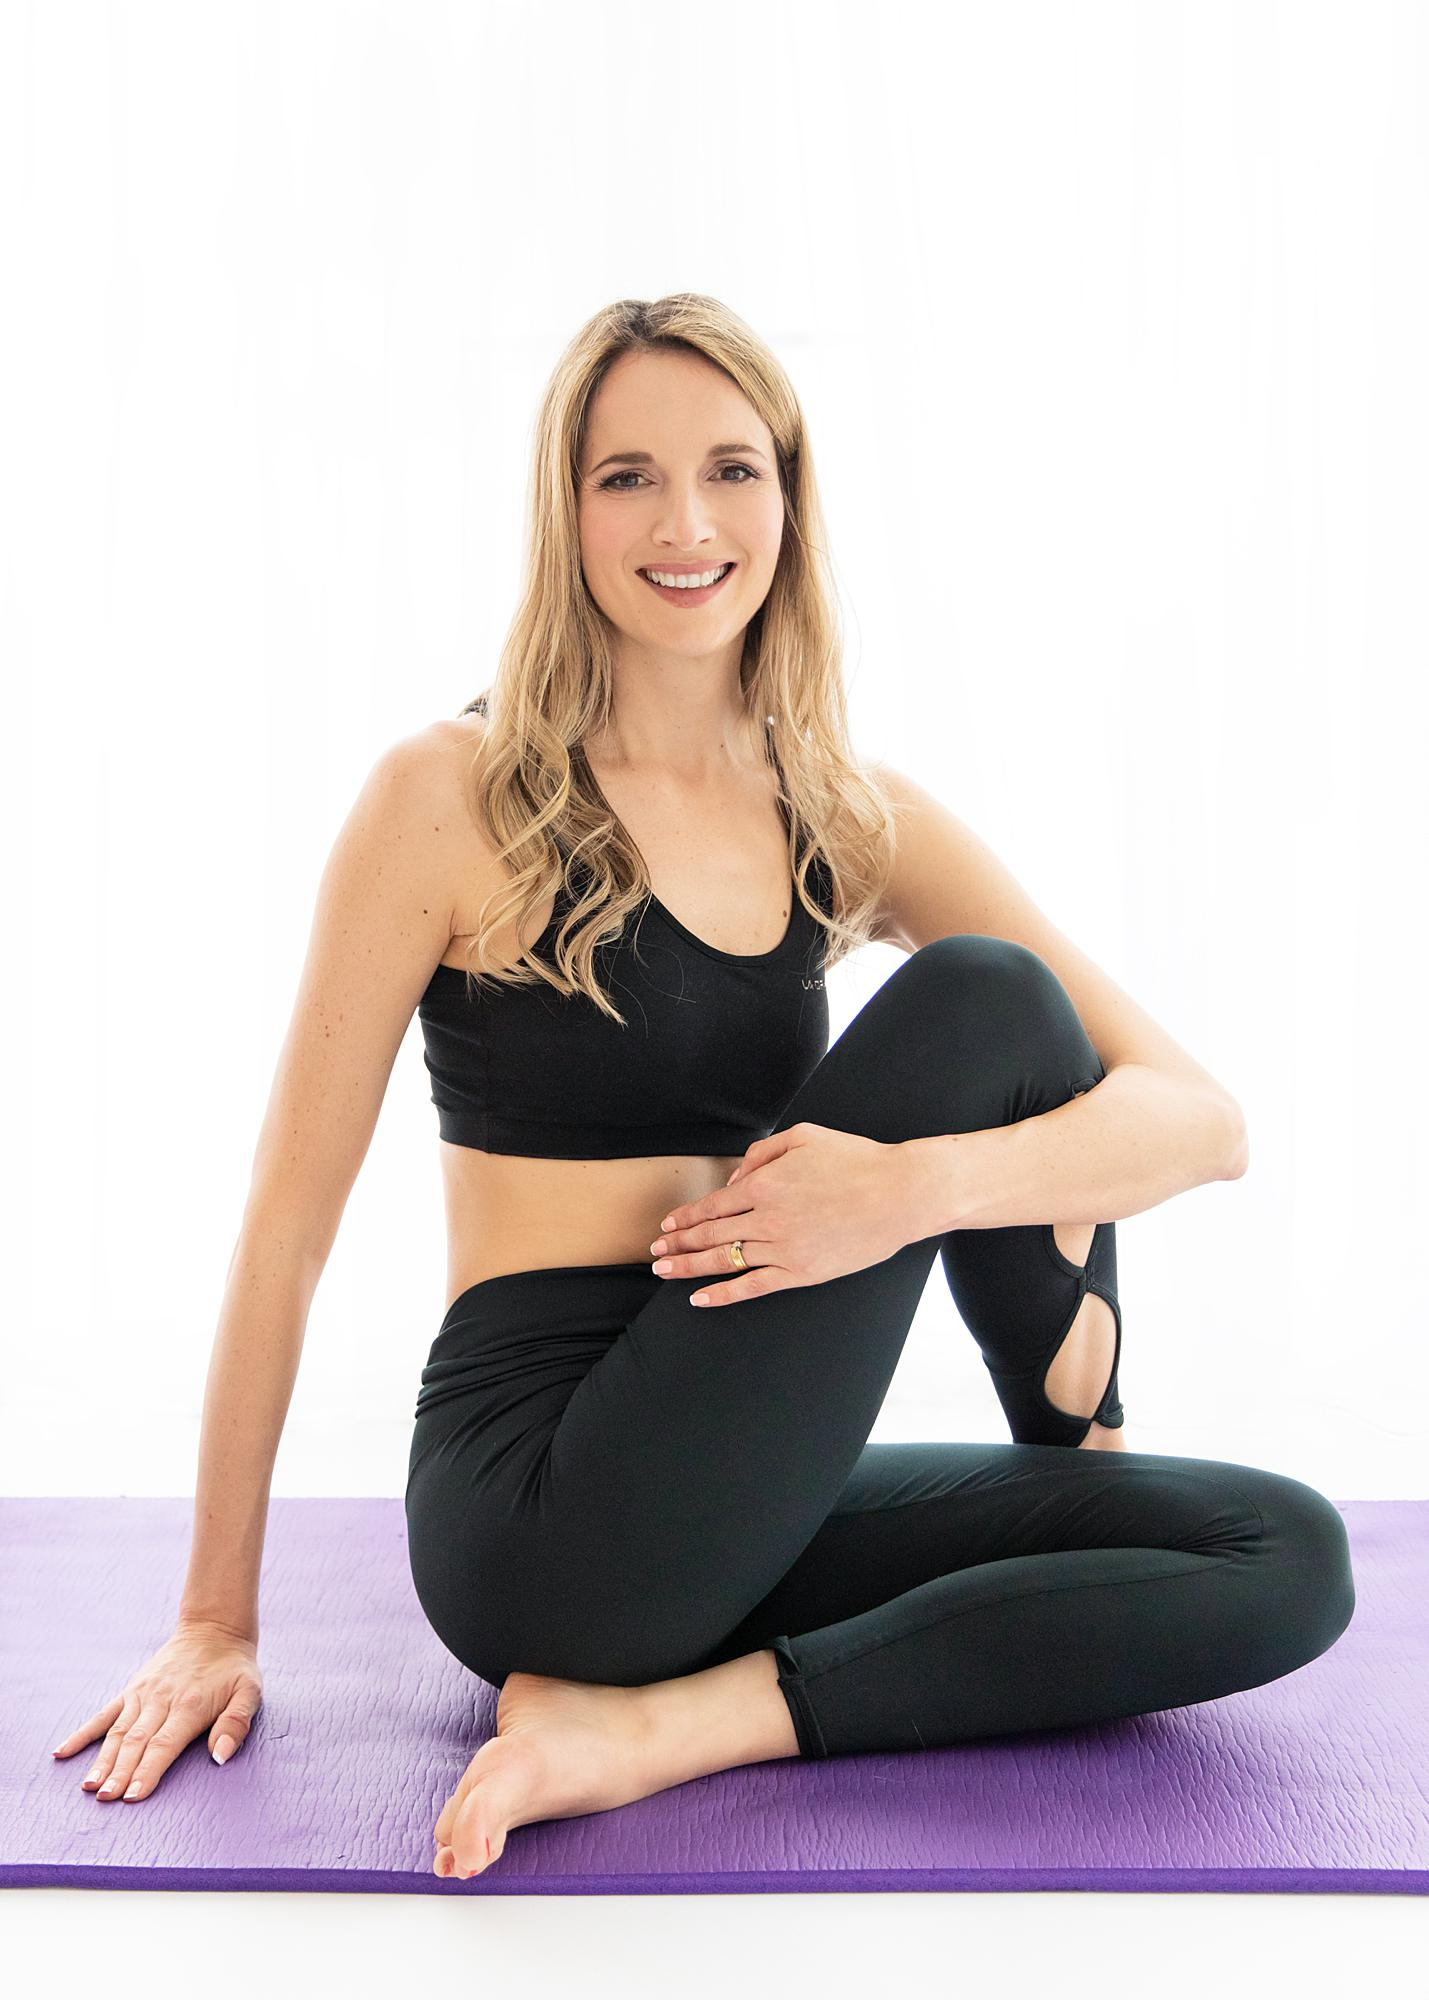 Pilates Teacher poses on a white background for a Personal Branding photoshoot in Sudbury, Suffolk